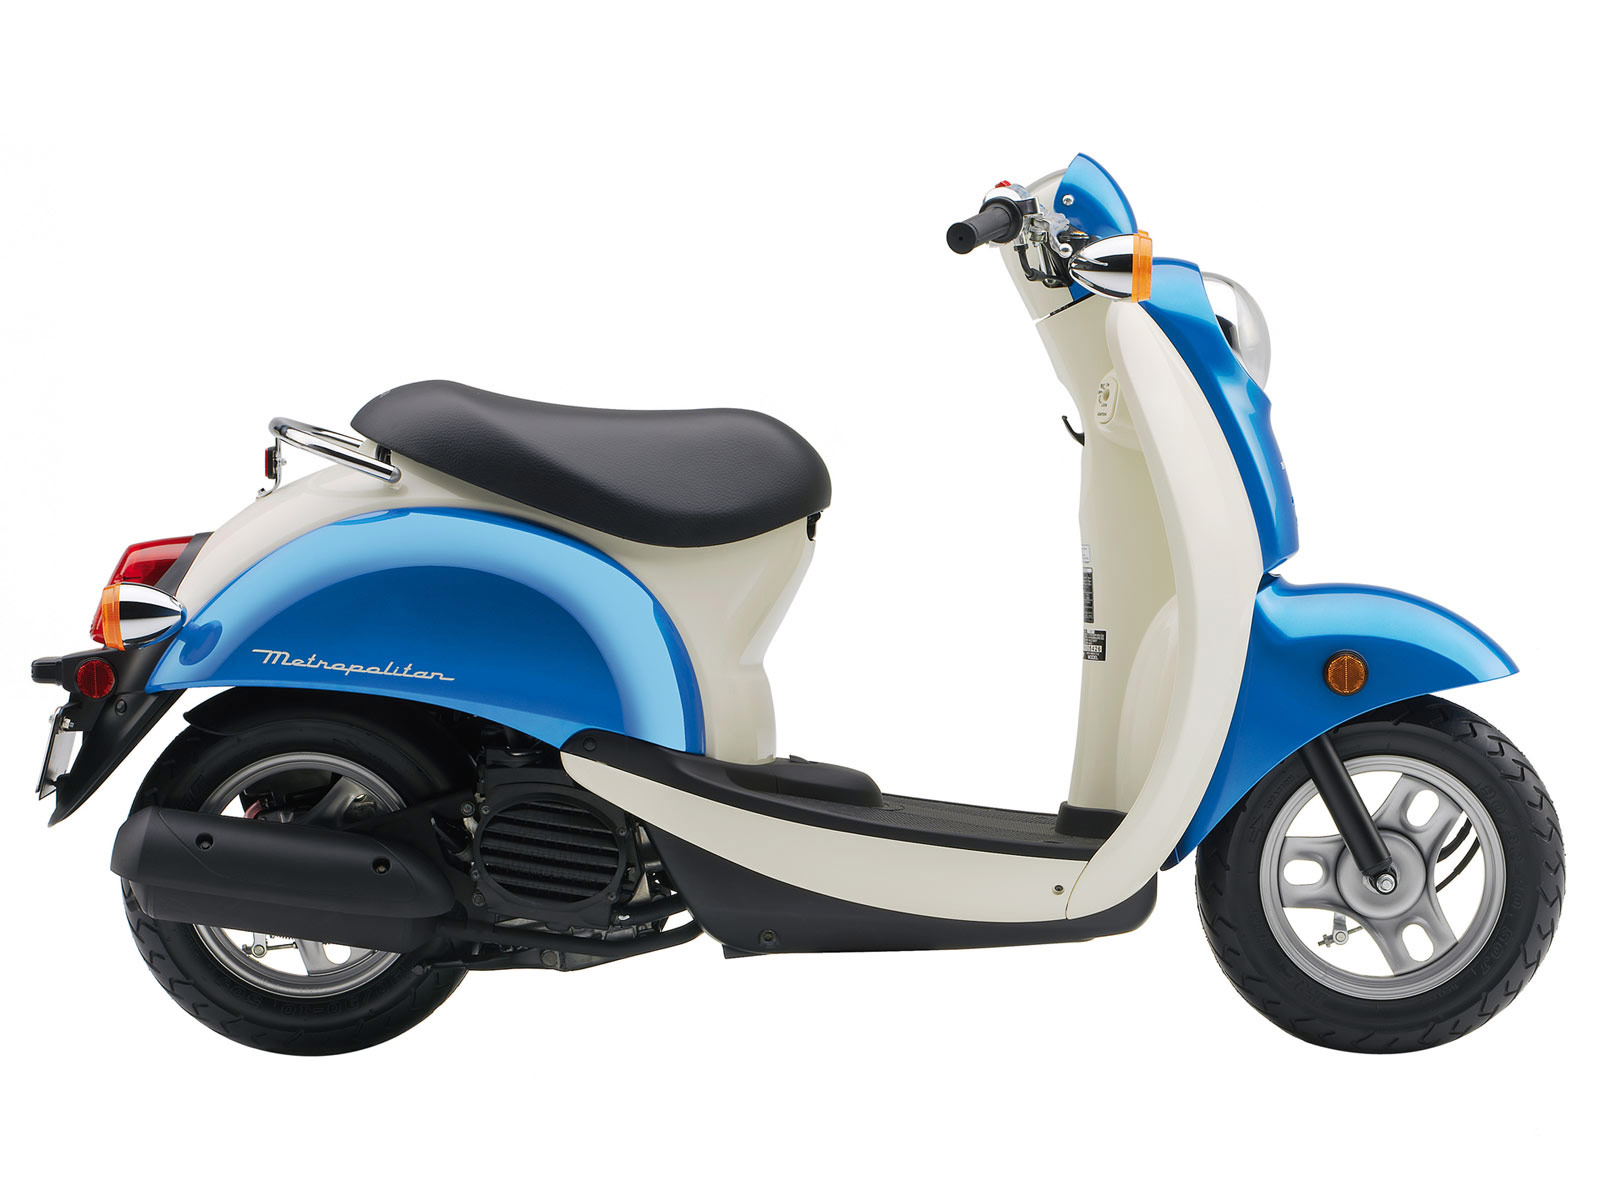 2008 Honda Metropolitan Scooter Pictures Accident Lawyers Info